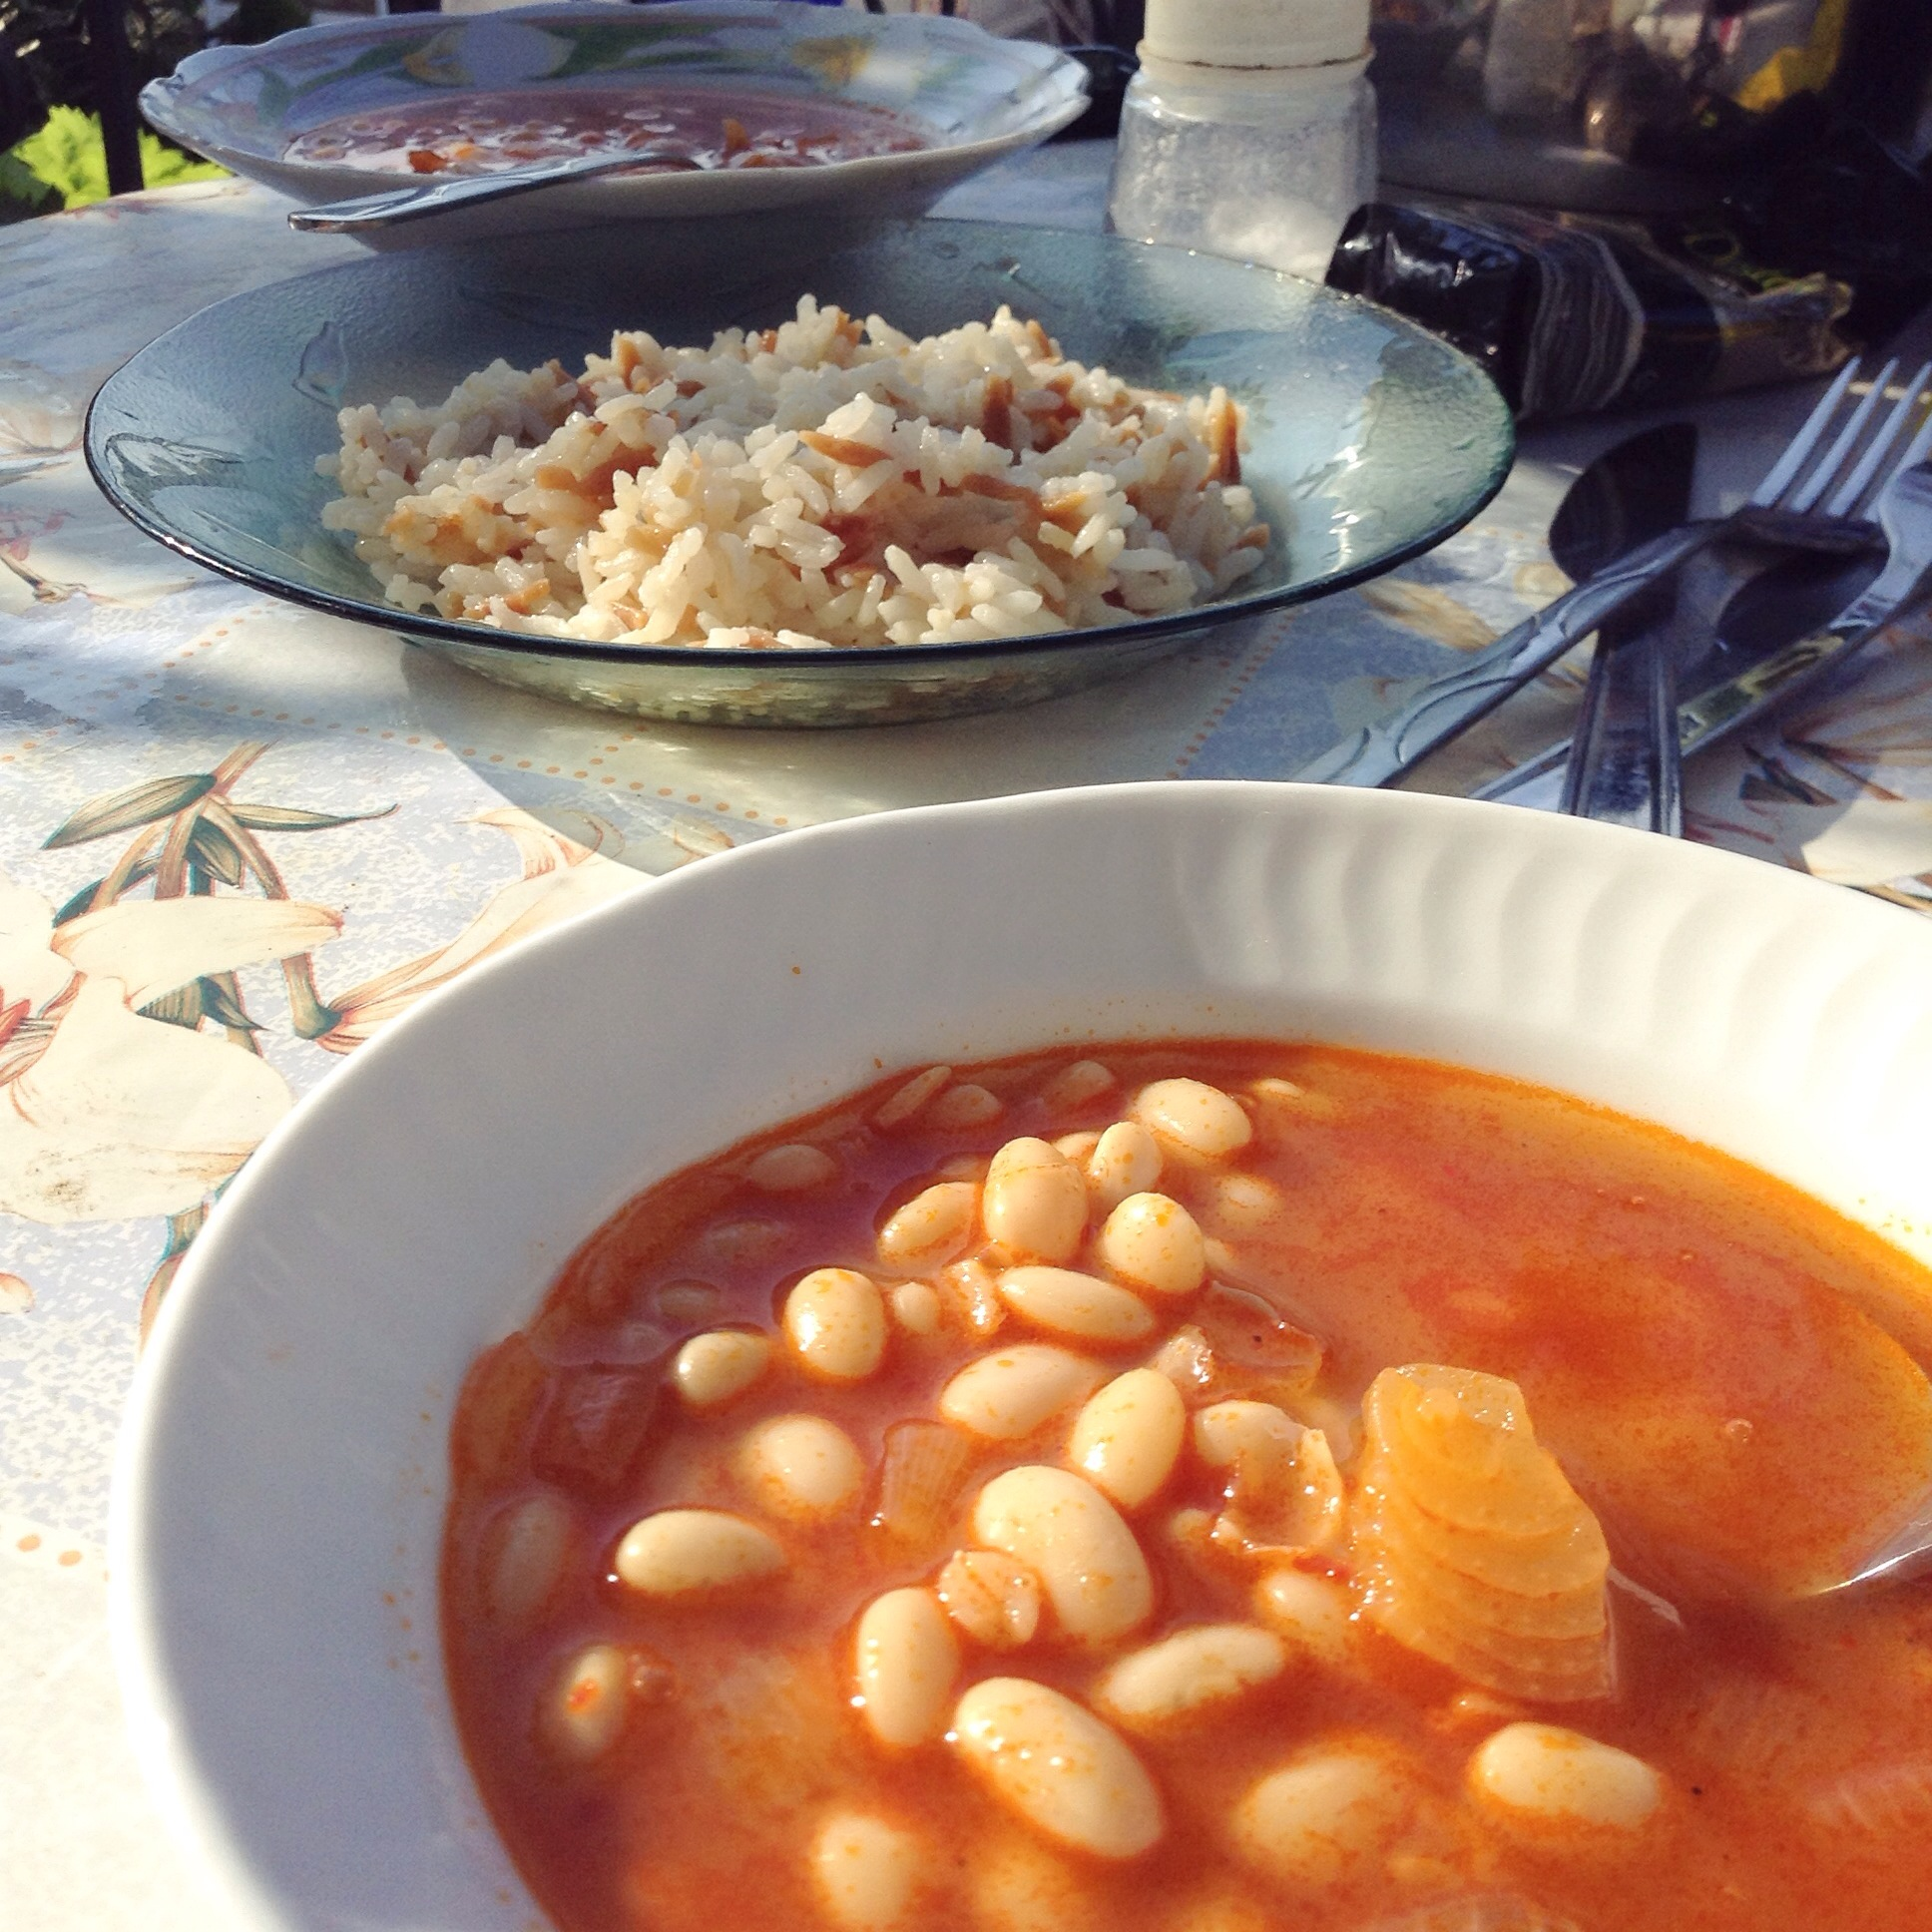 Kuru fasulye turkish white bean stew recipe living the turkish dream i really like turkish food and this is a delicious easy dish to make i posted a photo on facebook earlier this week and a few people asked for the recipe forumfinder Choice Image